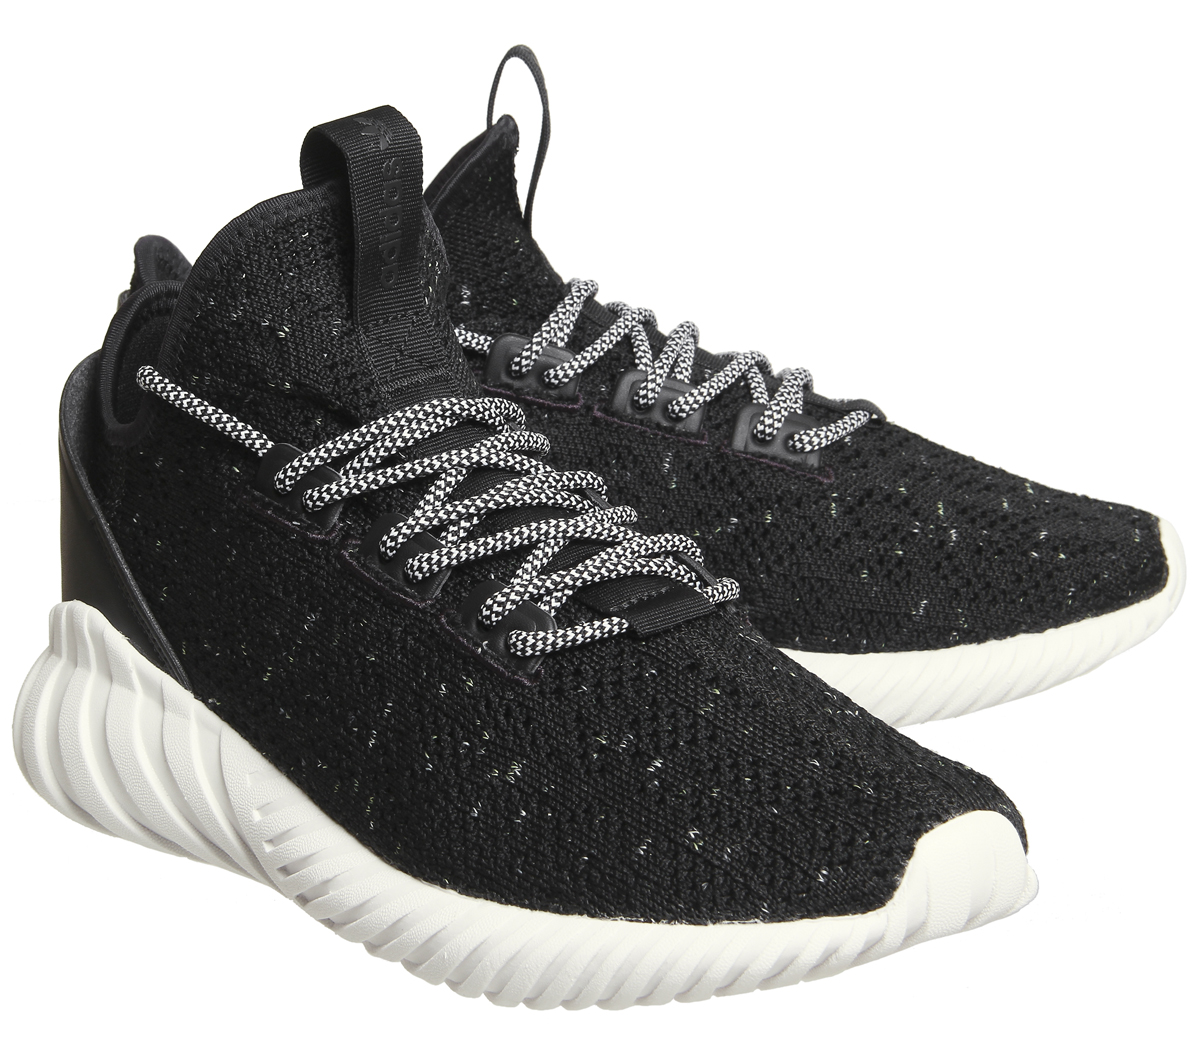 timeless design db25a 647d1 Details about Mens Adidas Tubular Doom Sock Black White Trainers Shoes